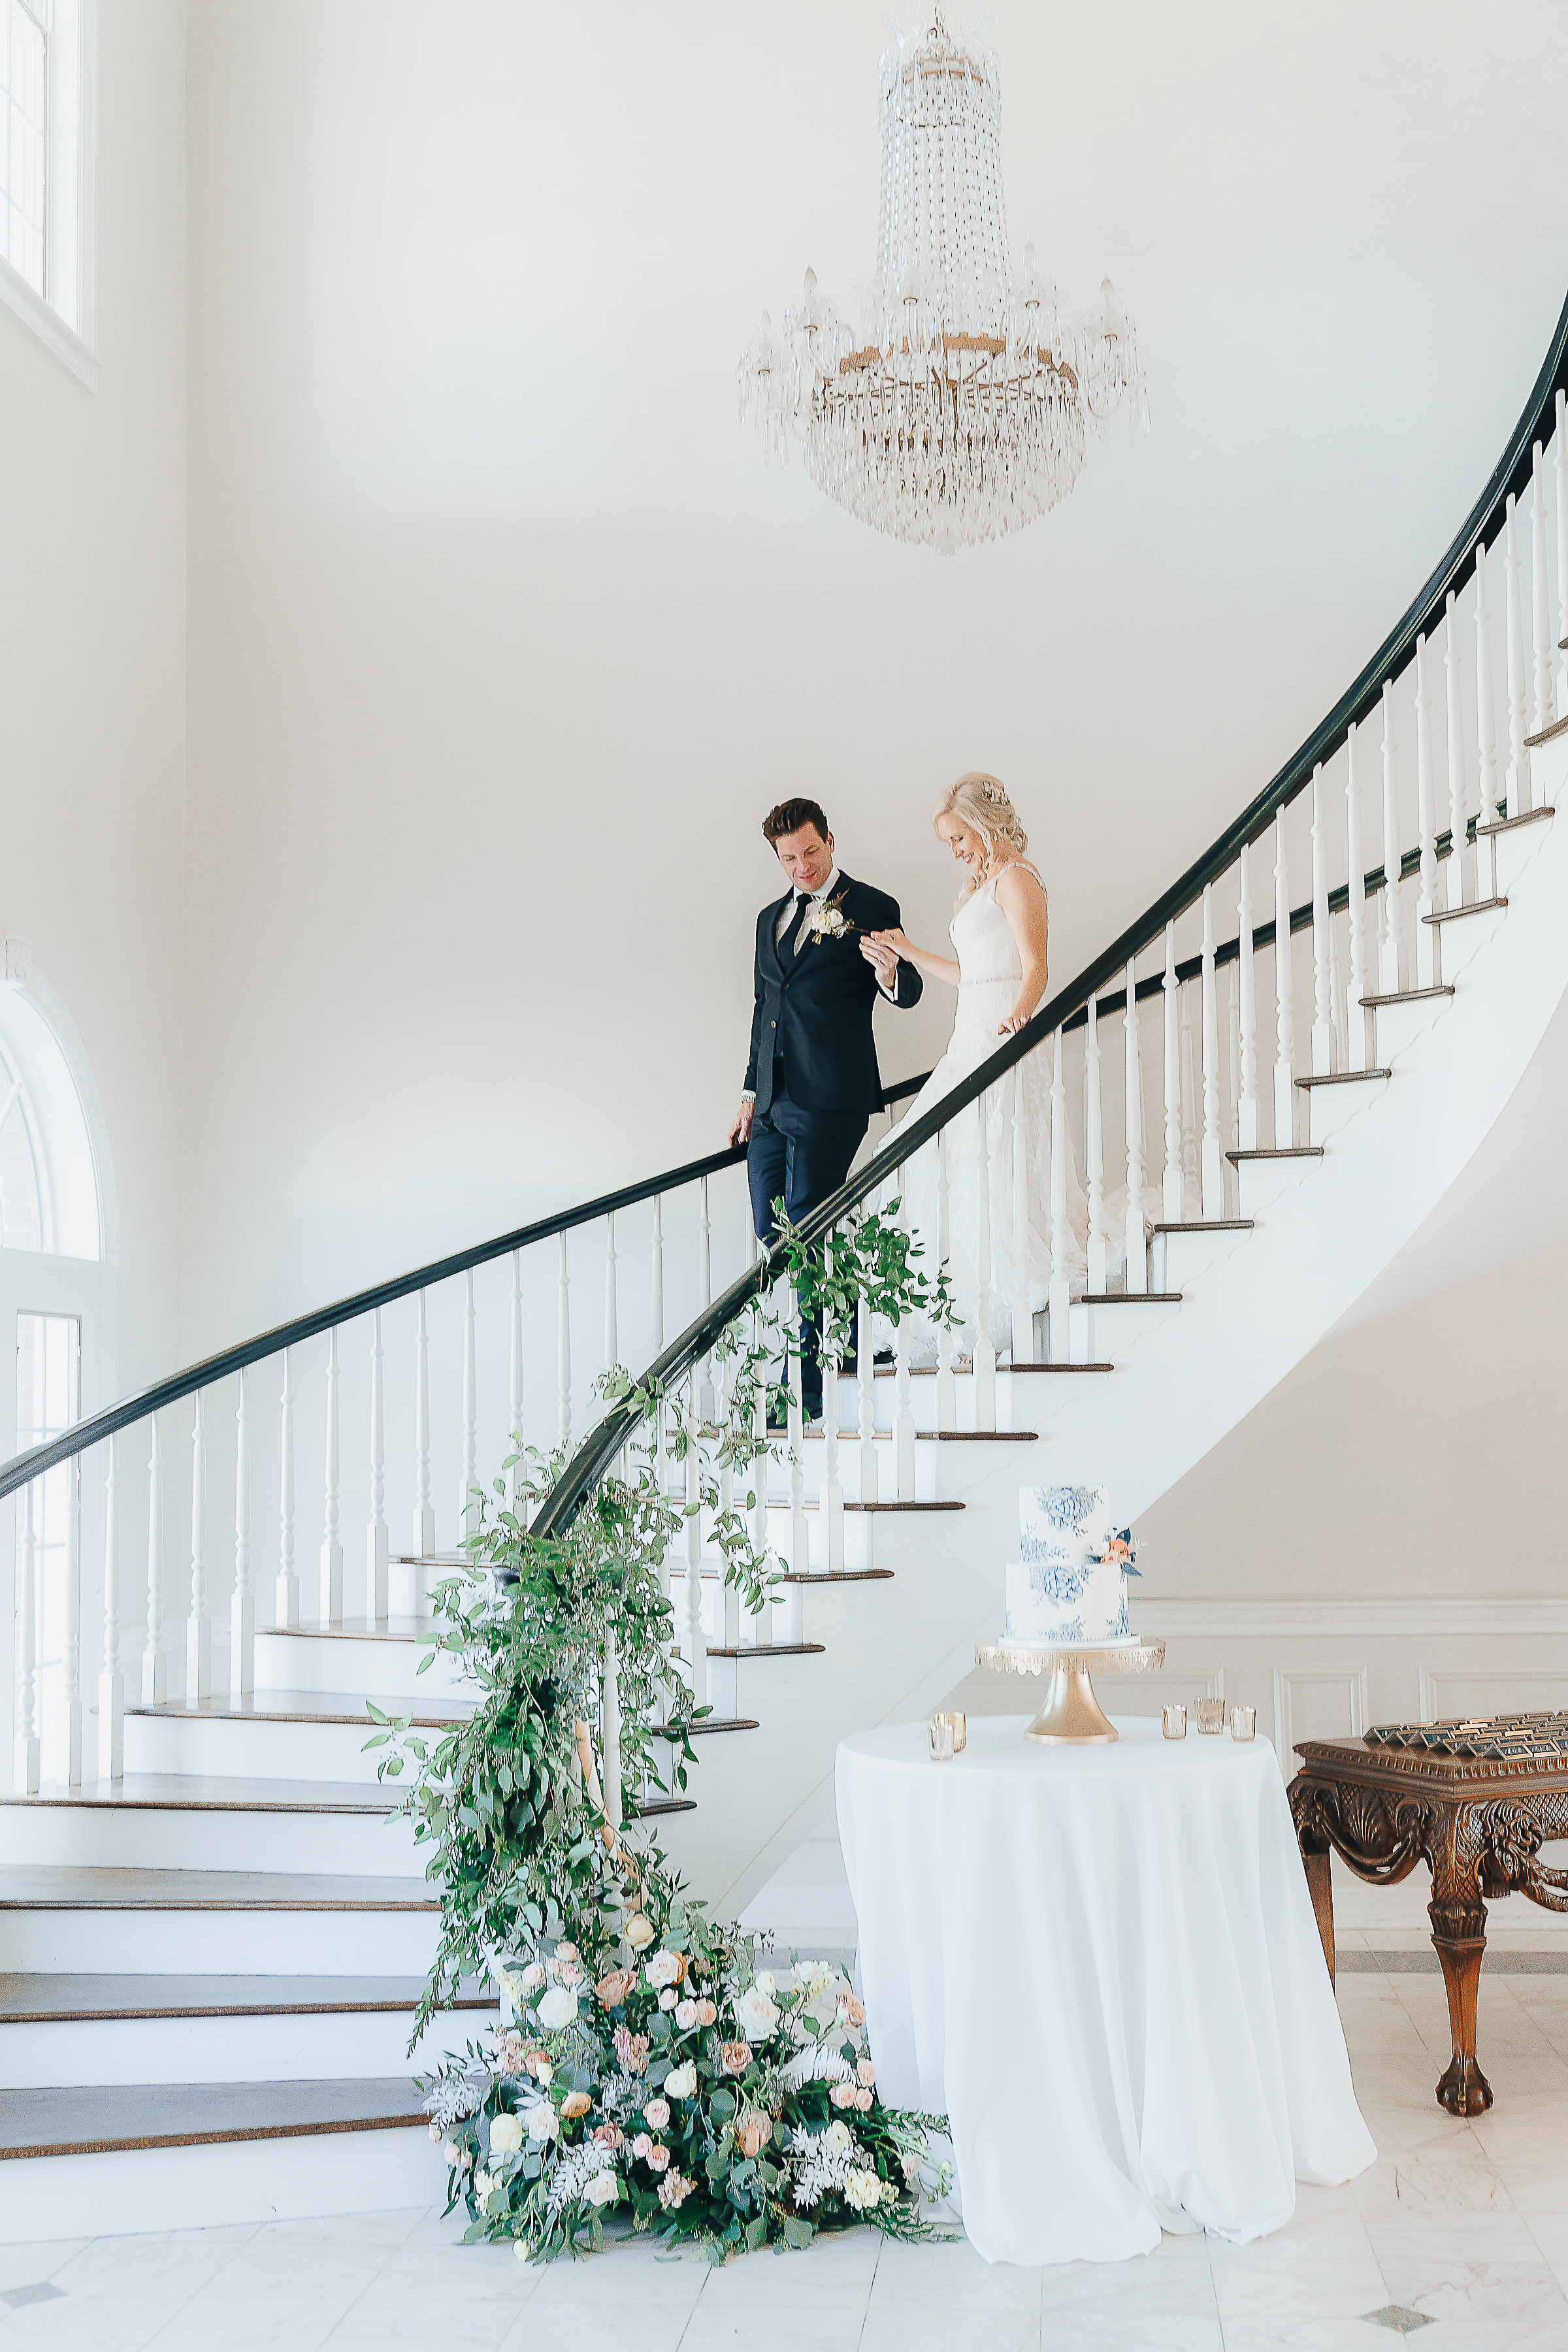 Groom walking the Bride down a curving staircase with their cake display at the bottom